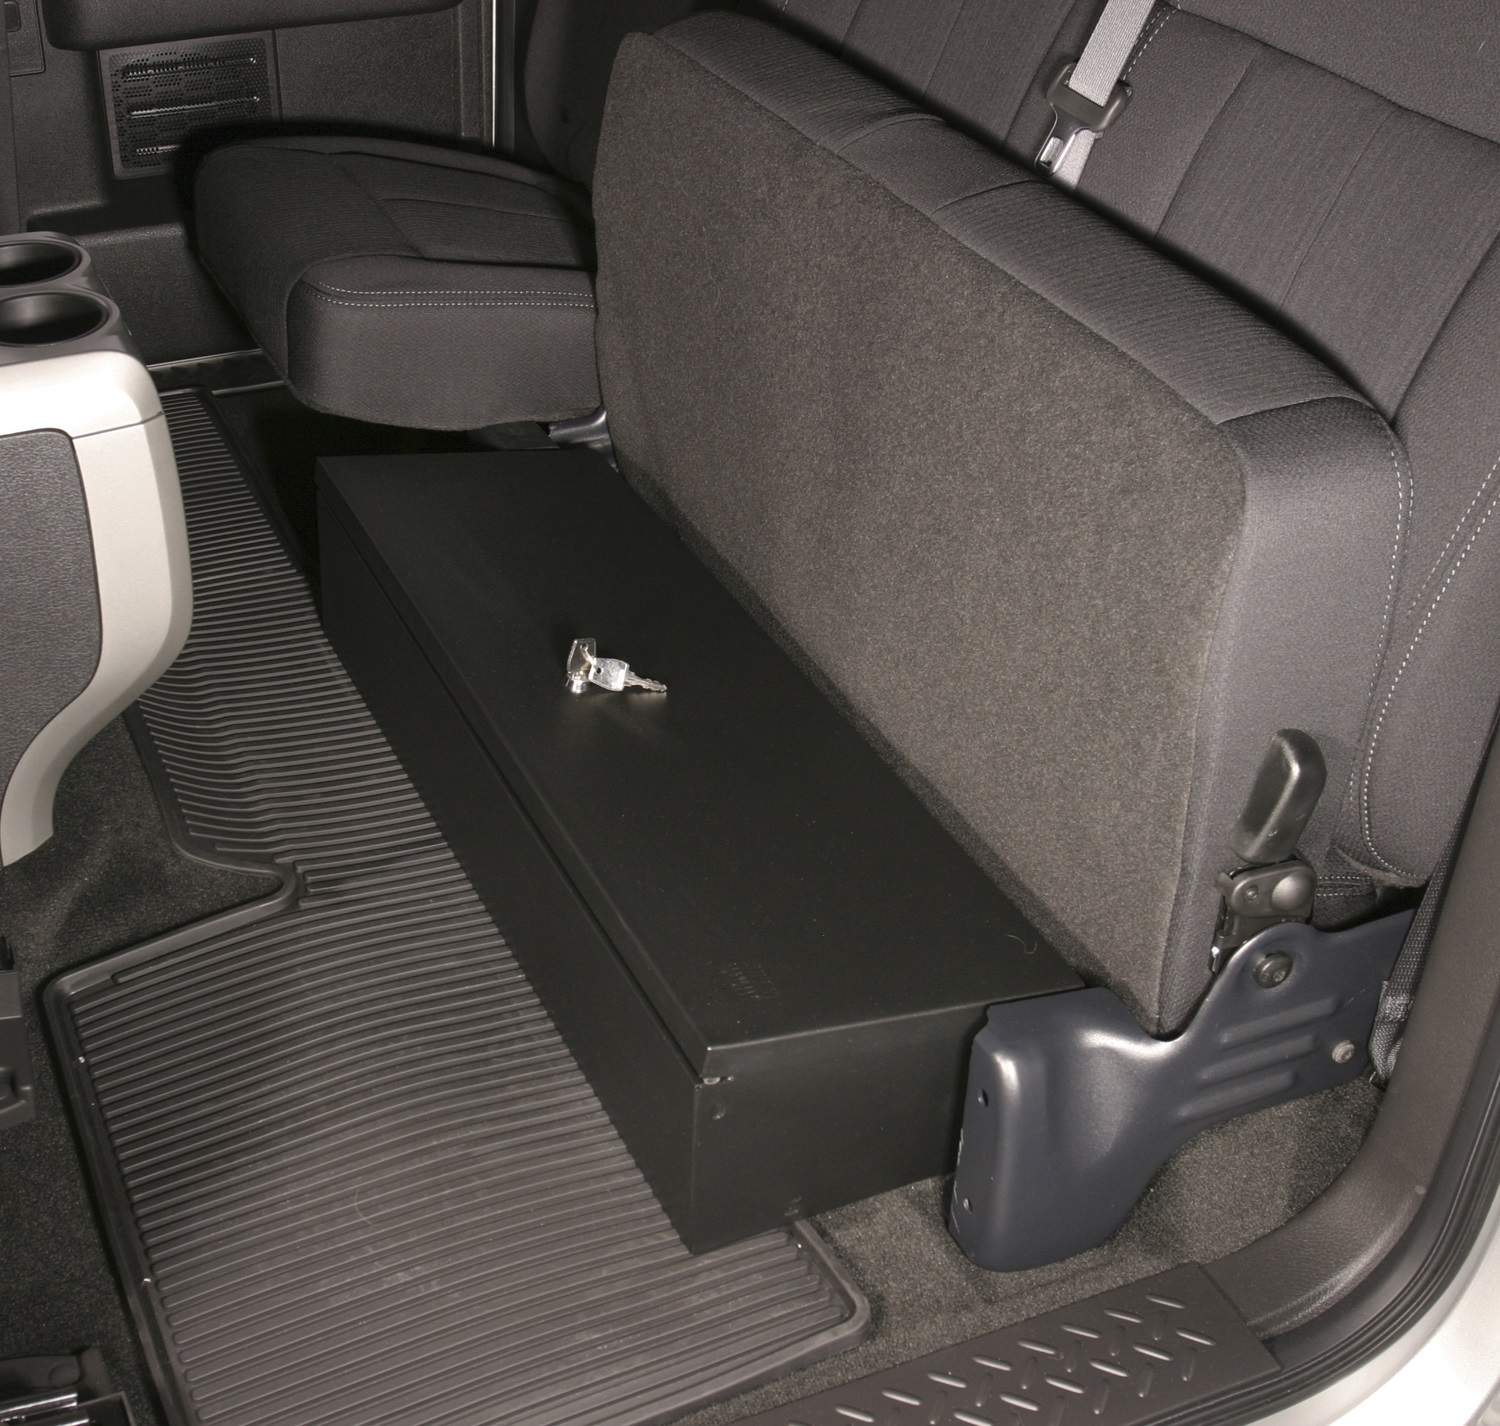 NEW Tuffy Security Underseat Lockbox 09 13 F 150 Pickup